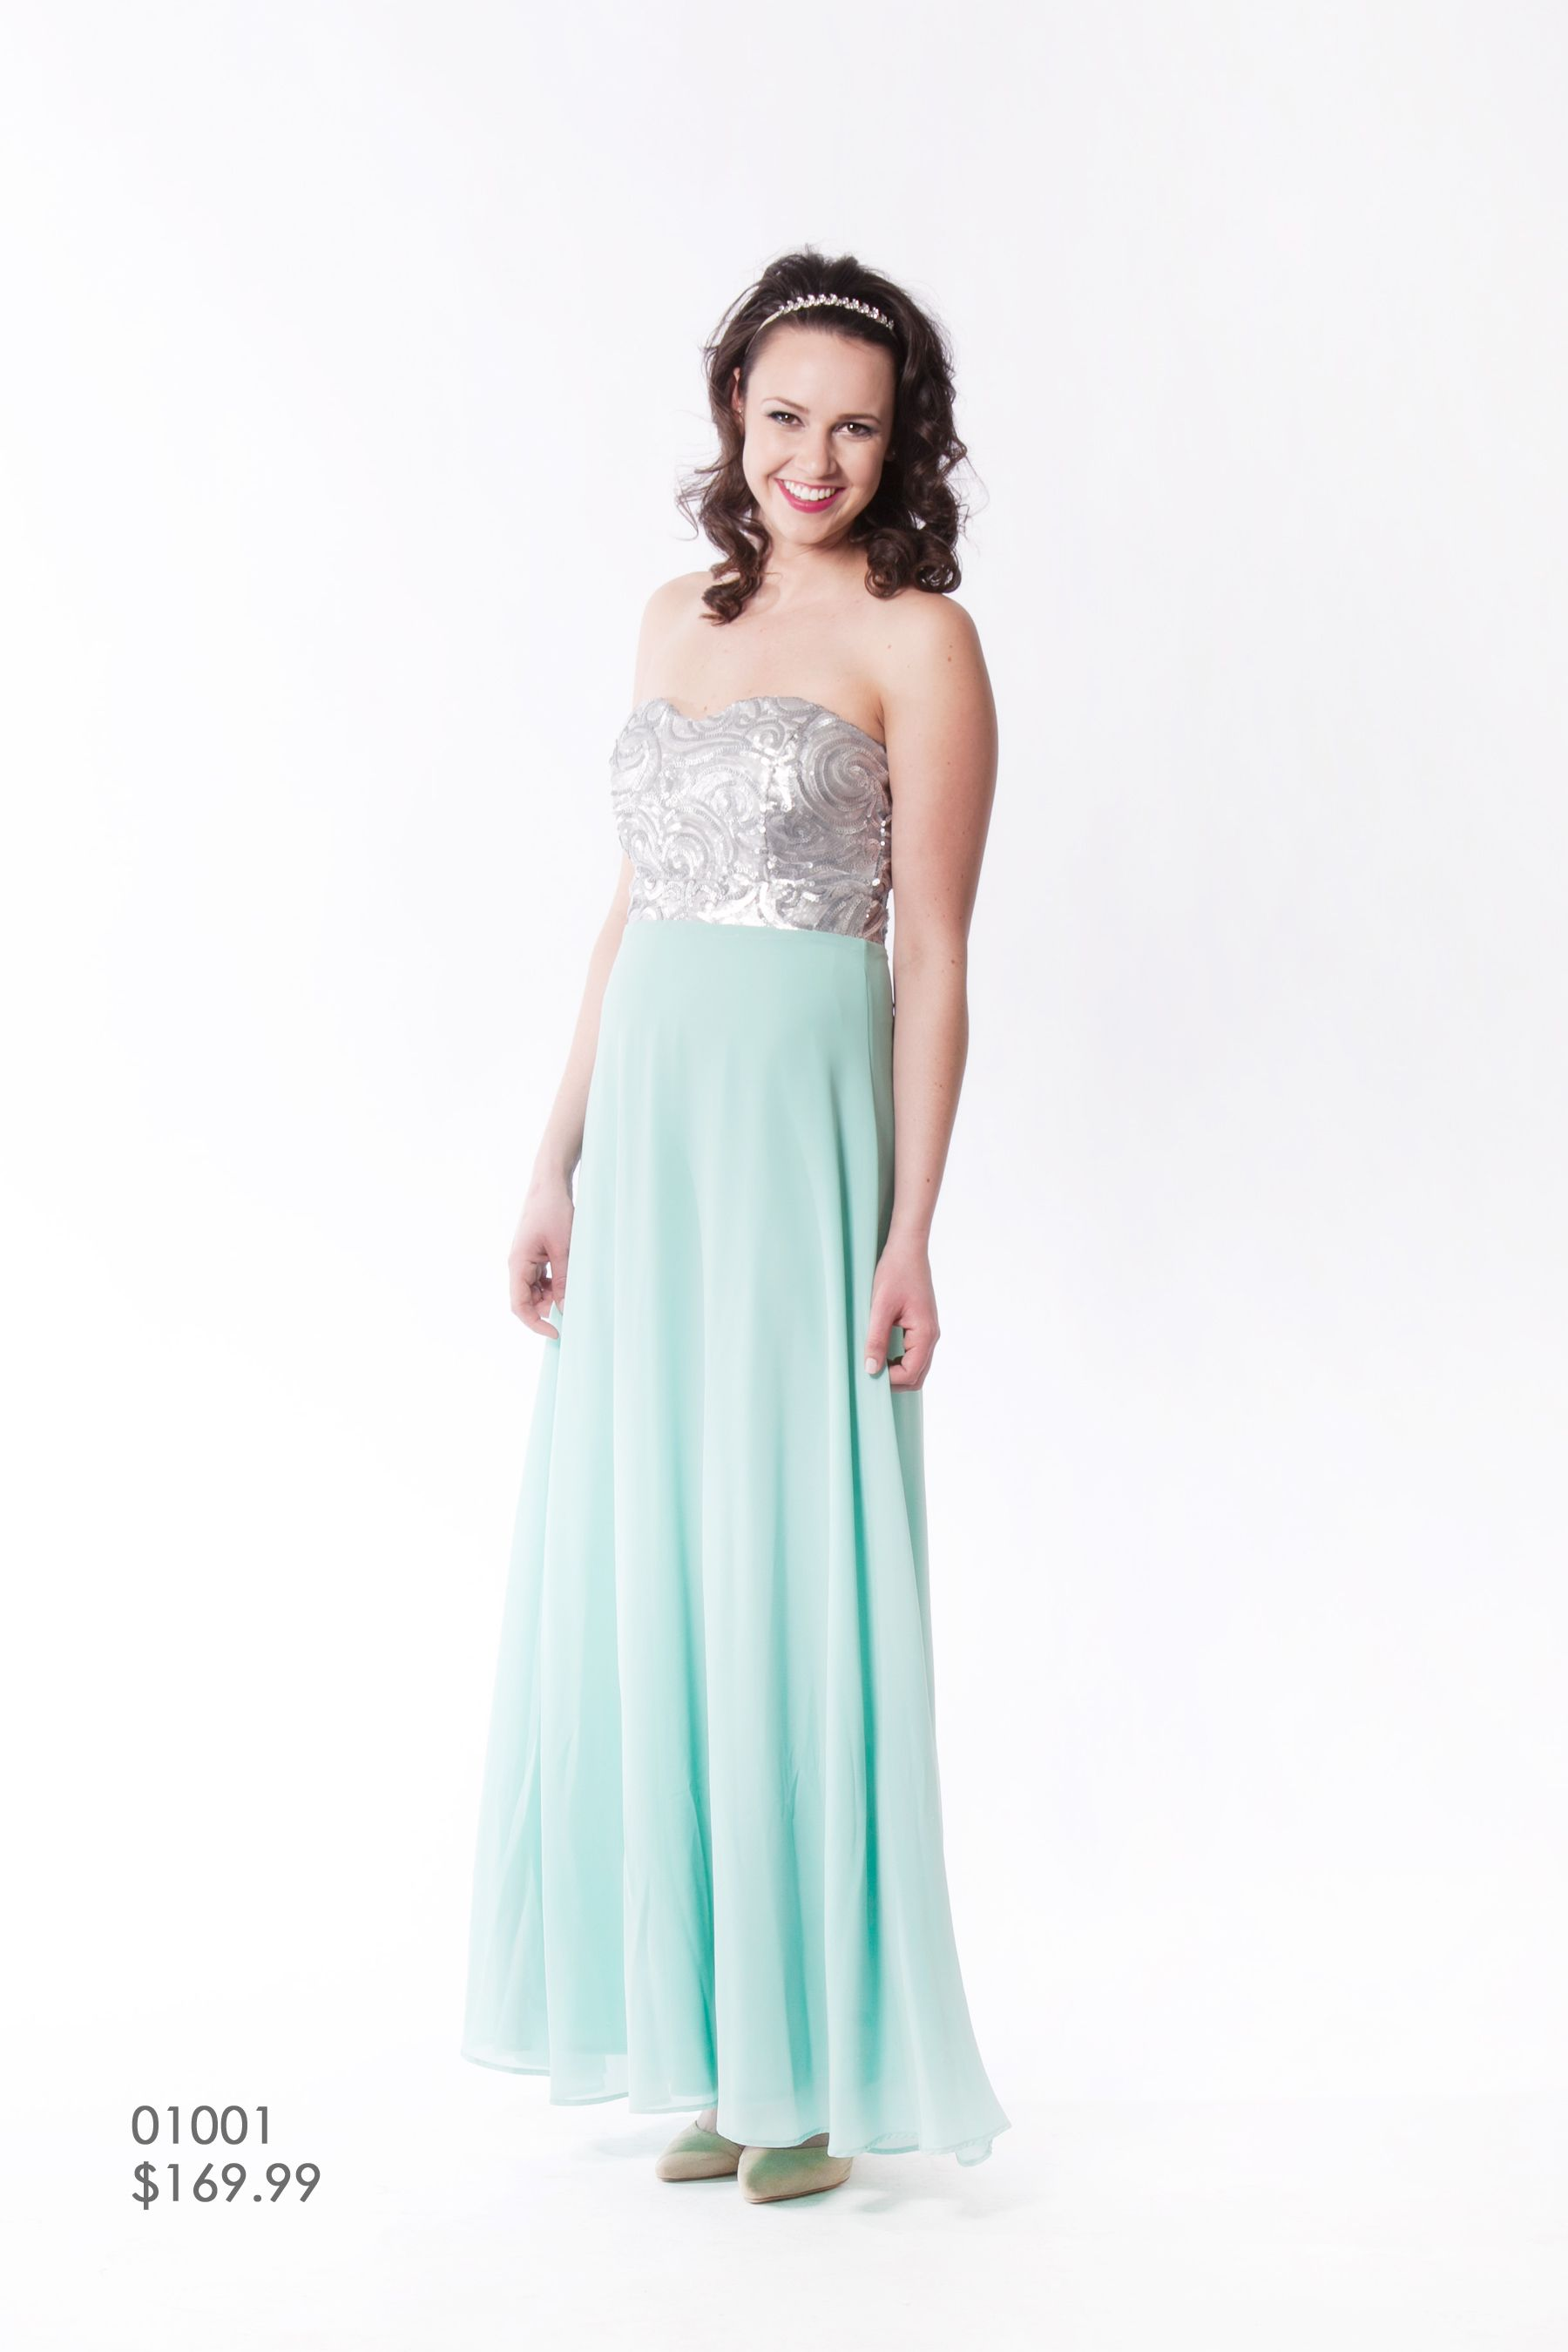 Romantic sequin teal turqoise mint sweetheart maxi romantic sequin teal turqoise mint sweetheart maxi bridesmaid dress ombrellifo Choice Image